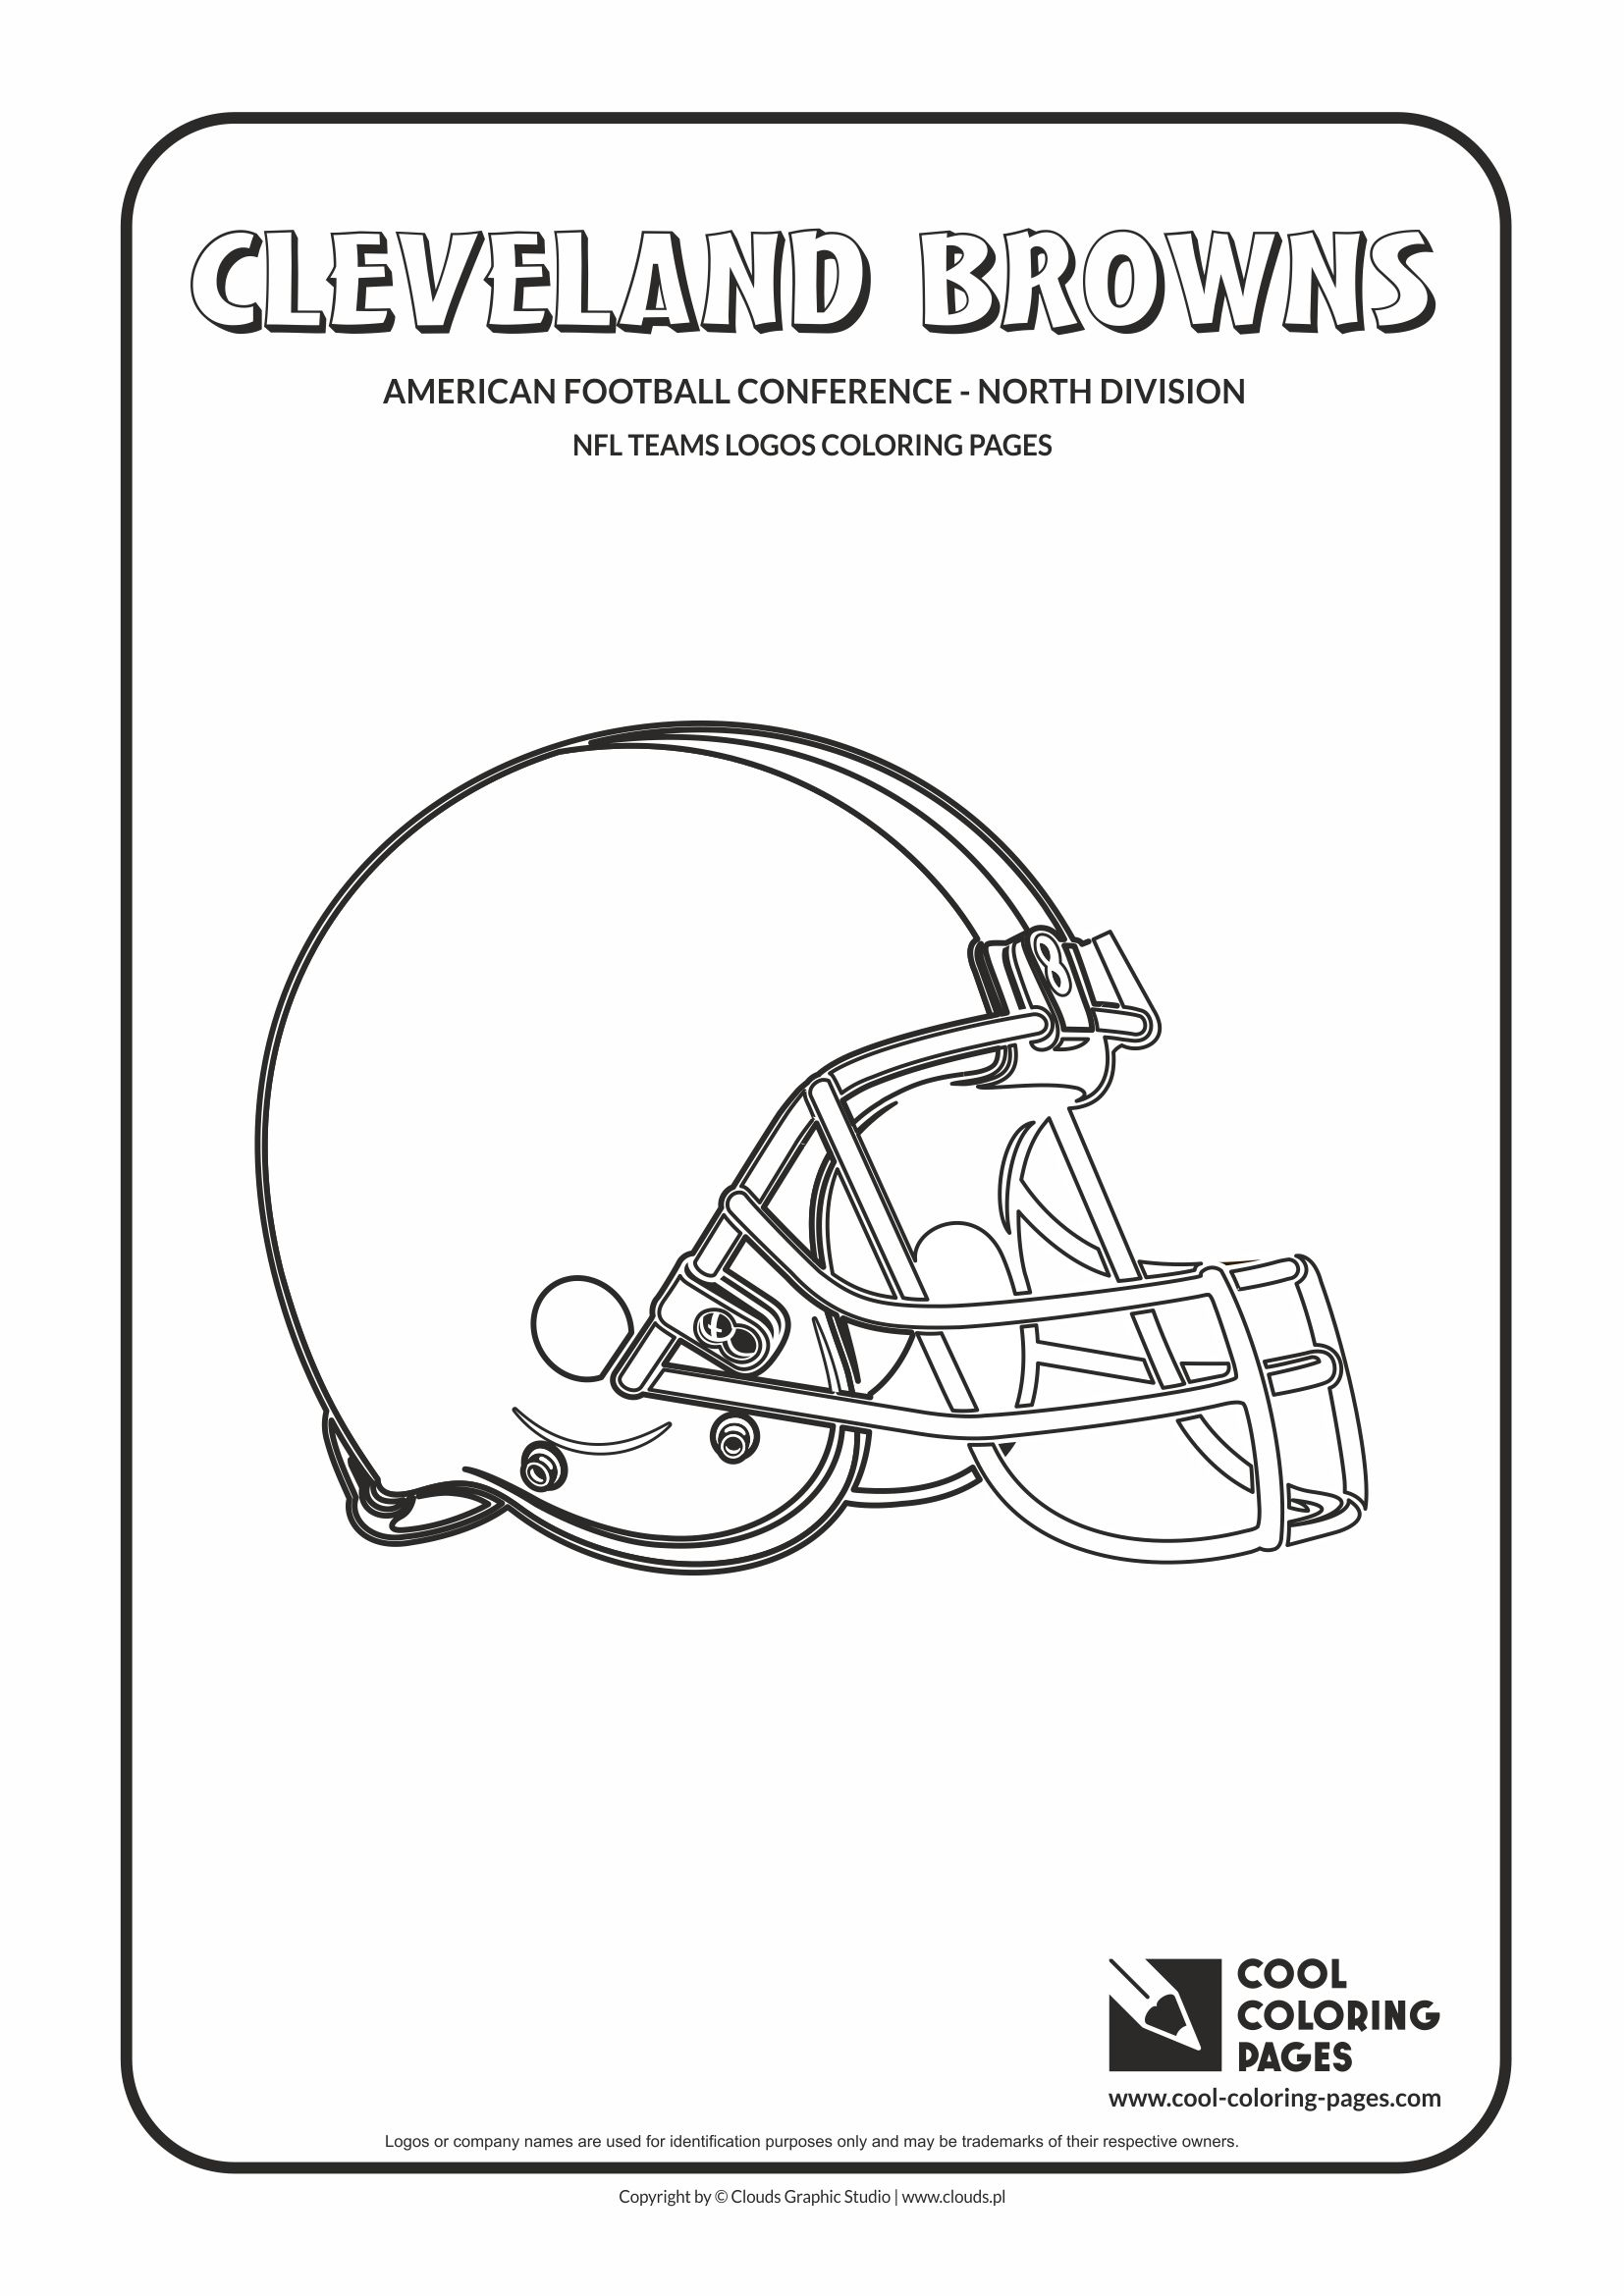 Cleveland Browns Coloring Pages - Learny Kids